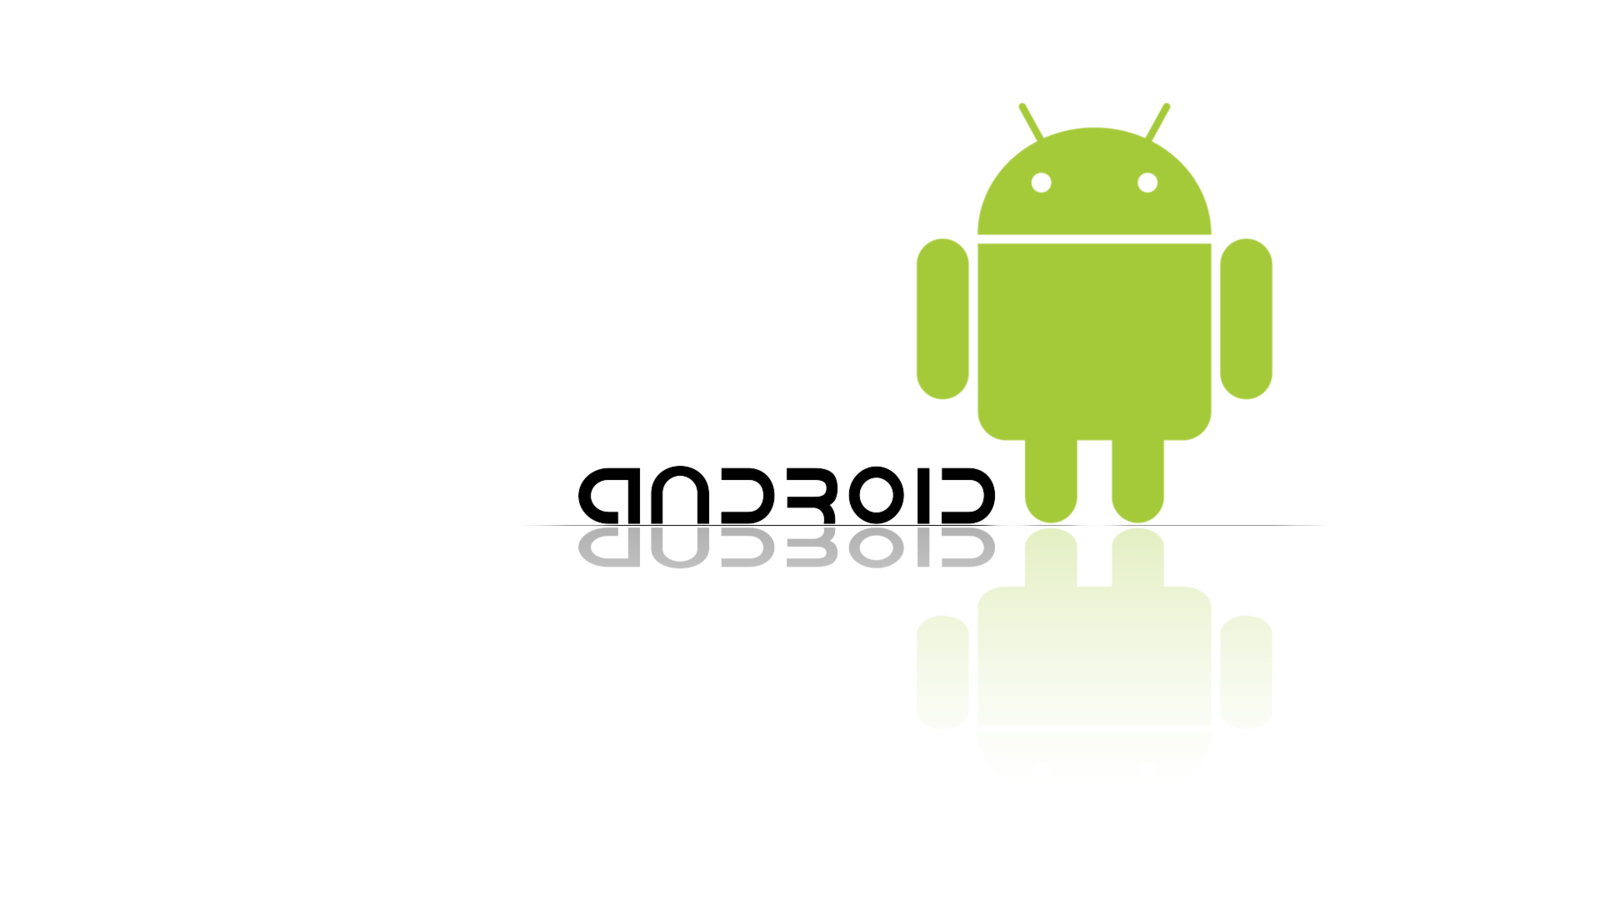 Android+Java